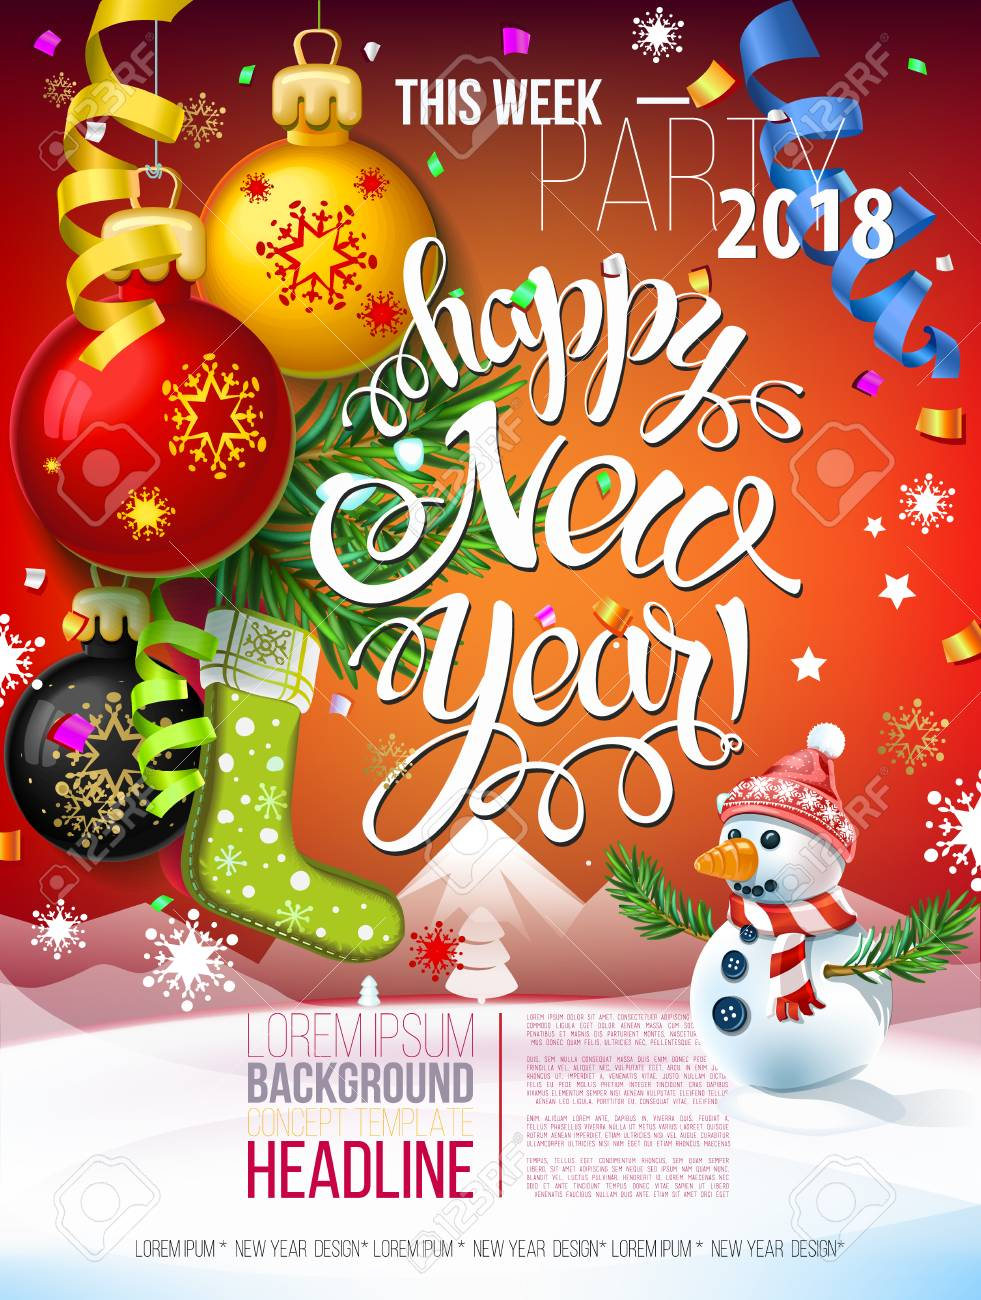 happy new year 2018 decoration poster card and merry christmas royalty free cliparts vectors and stock illustration image 90069218 happy new year 2018 decoration poster card and merry christmas